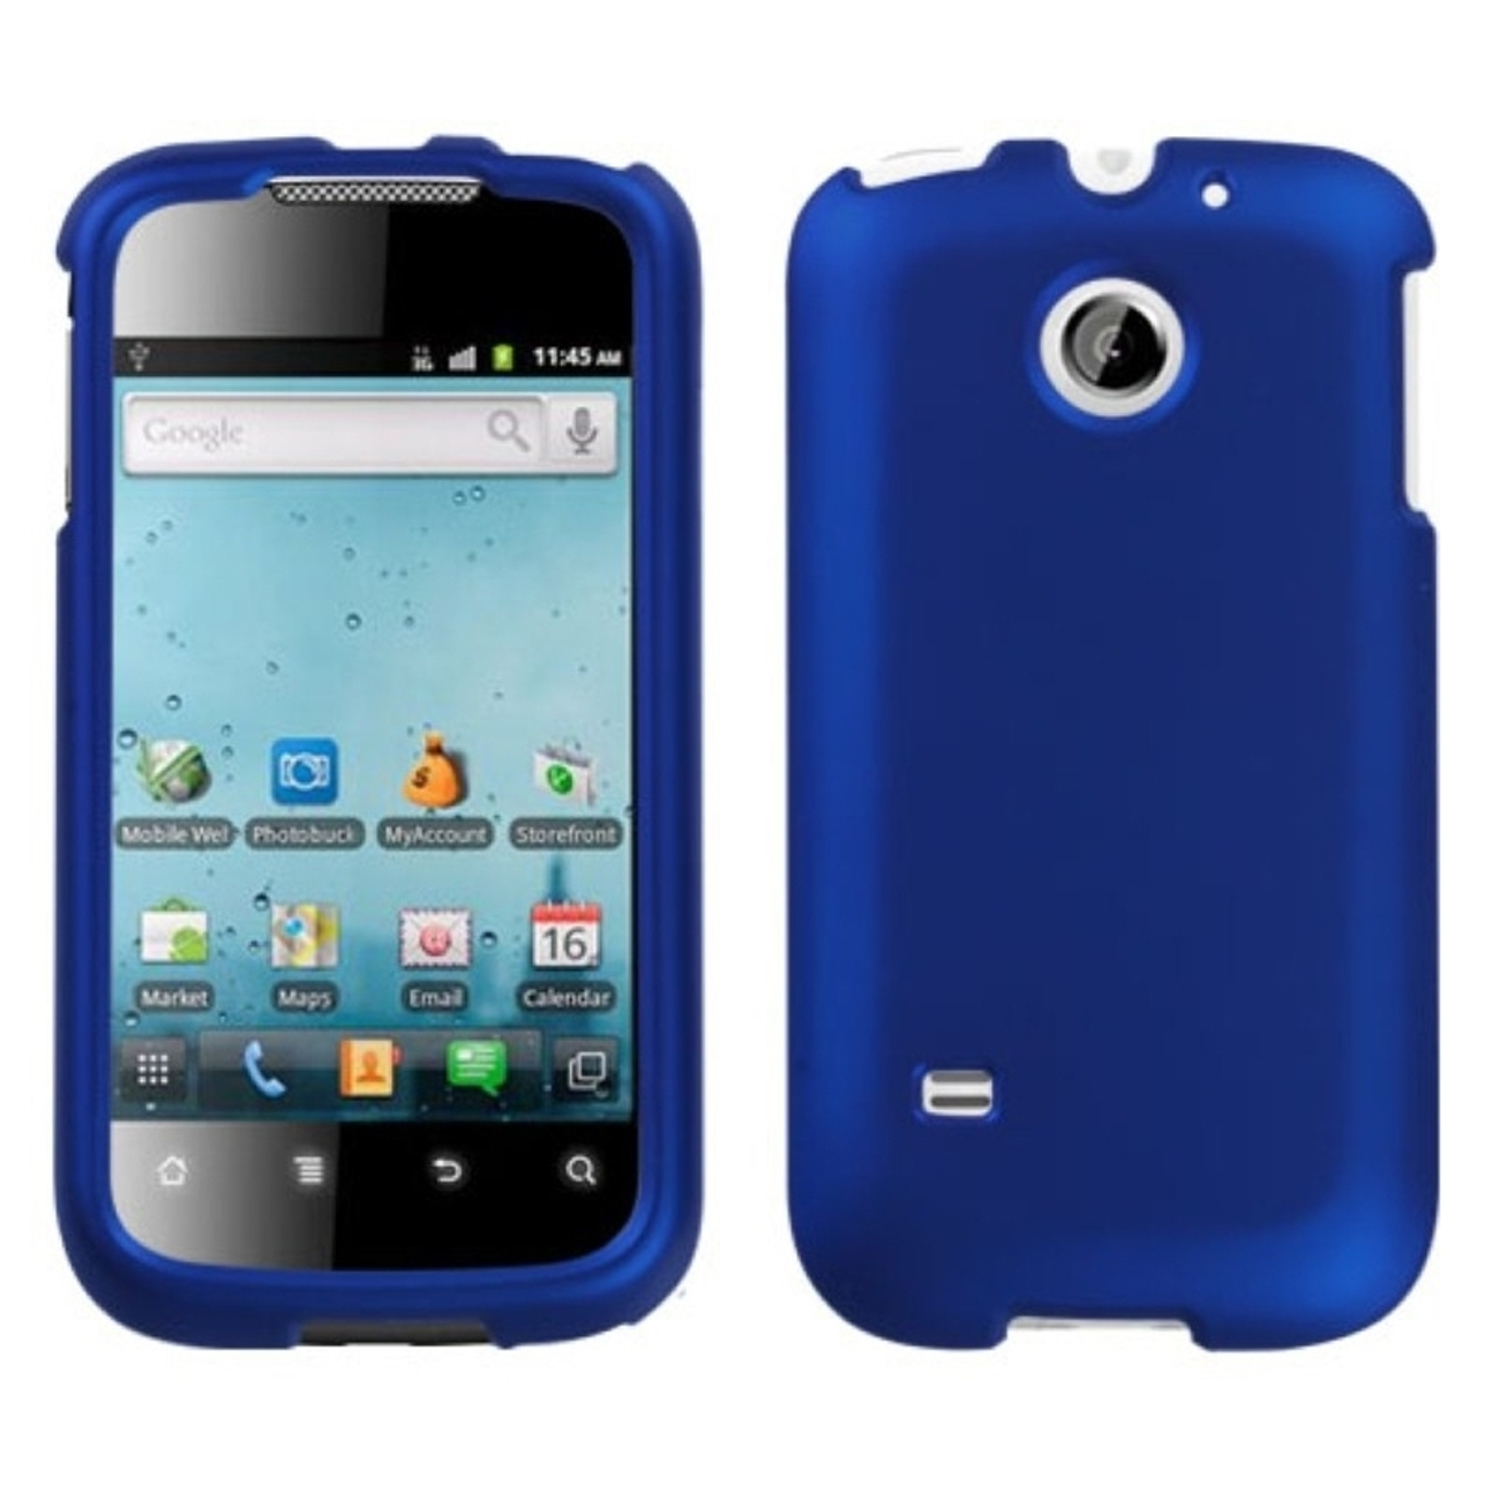 Insten Titanium Solid Dark Blue Phone Case for HUAWEI: M865 (Ascend II), U8651T (Prism), U8651S (Summit)